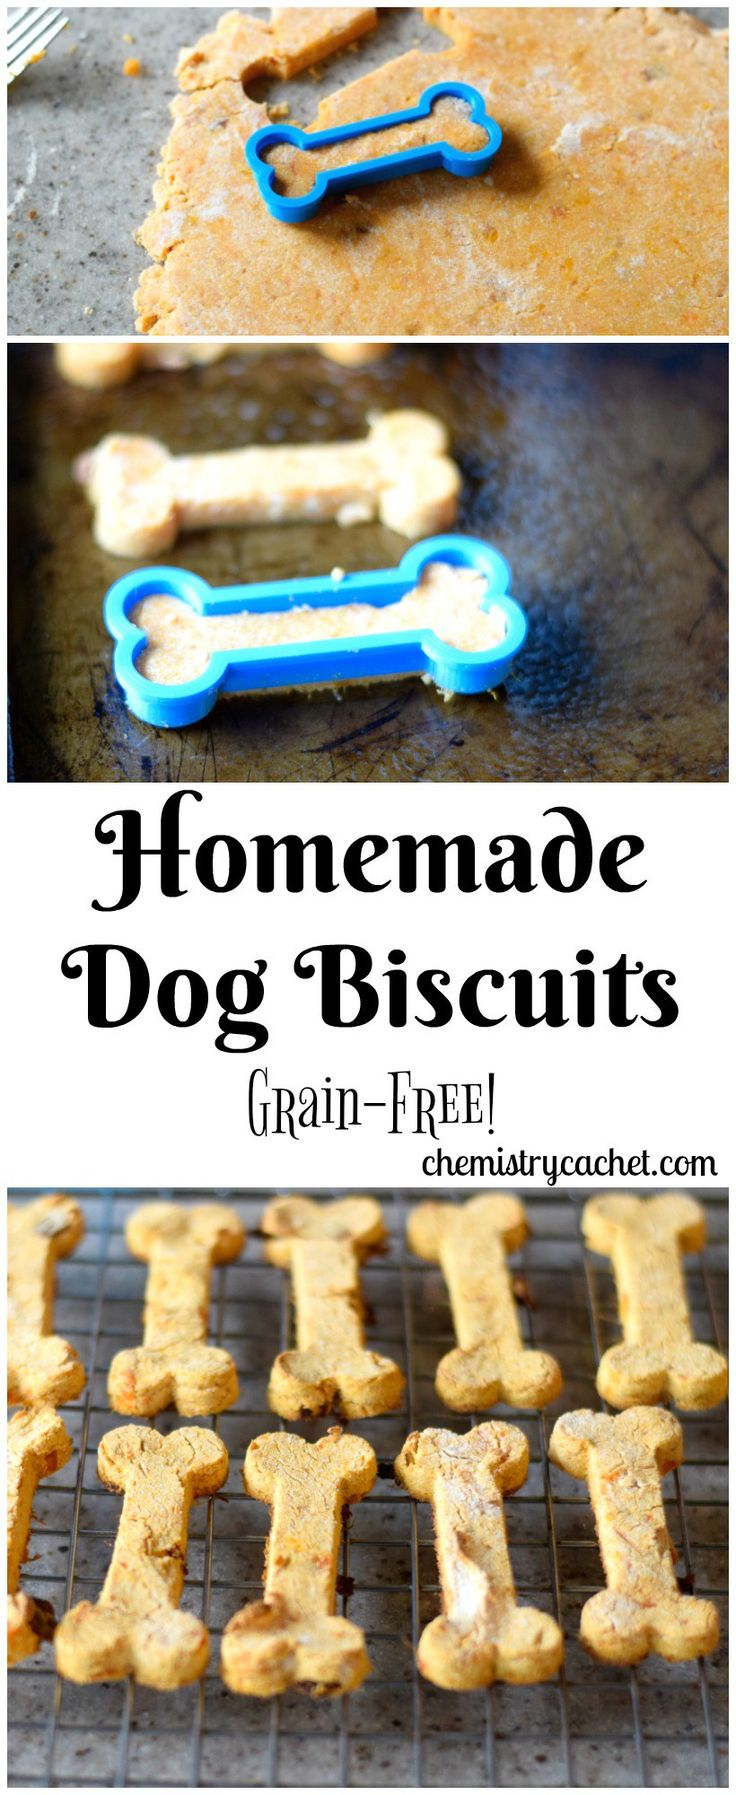 Homemade Grain-Free Dog Biscuits - Great Gift Idea! These homemade dog biscuits are so easy and perfect for your pet on chemistrycachet.com